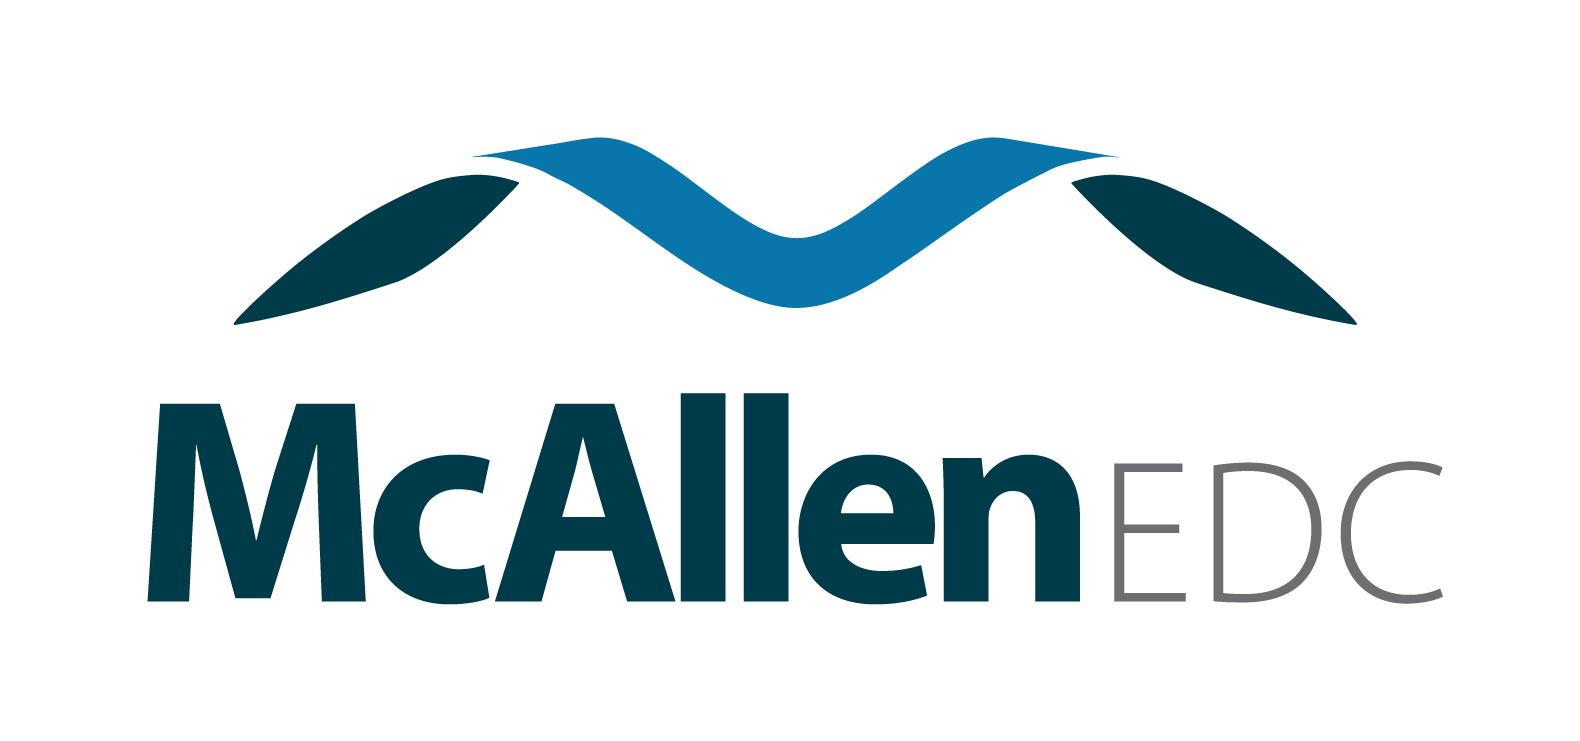 McAllen Texas, McAllen Economic Development Corporation logo.